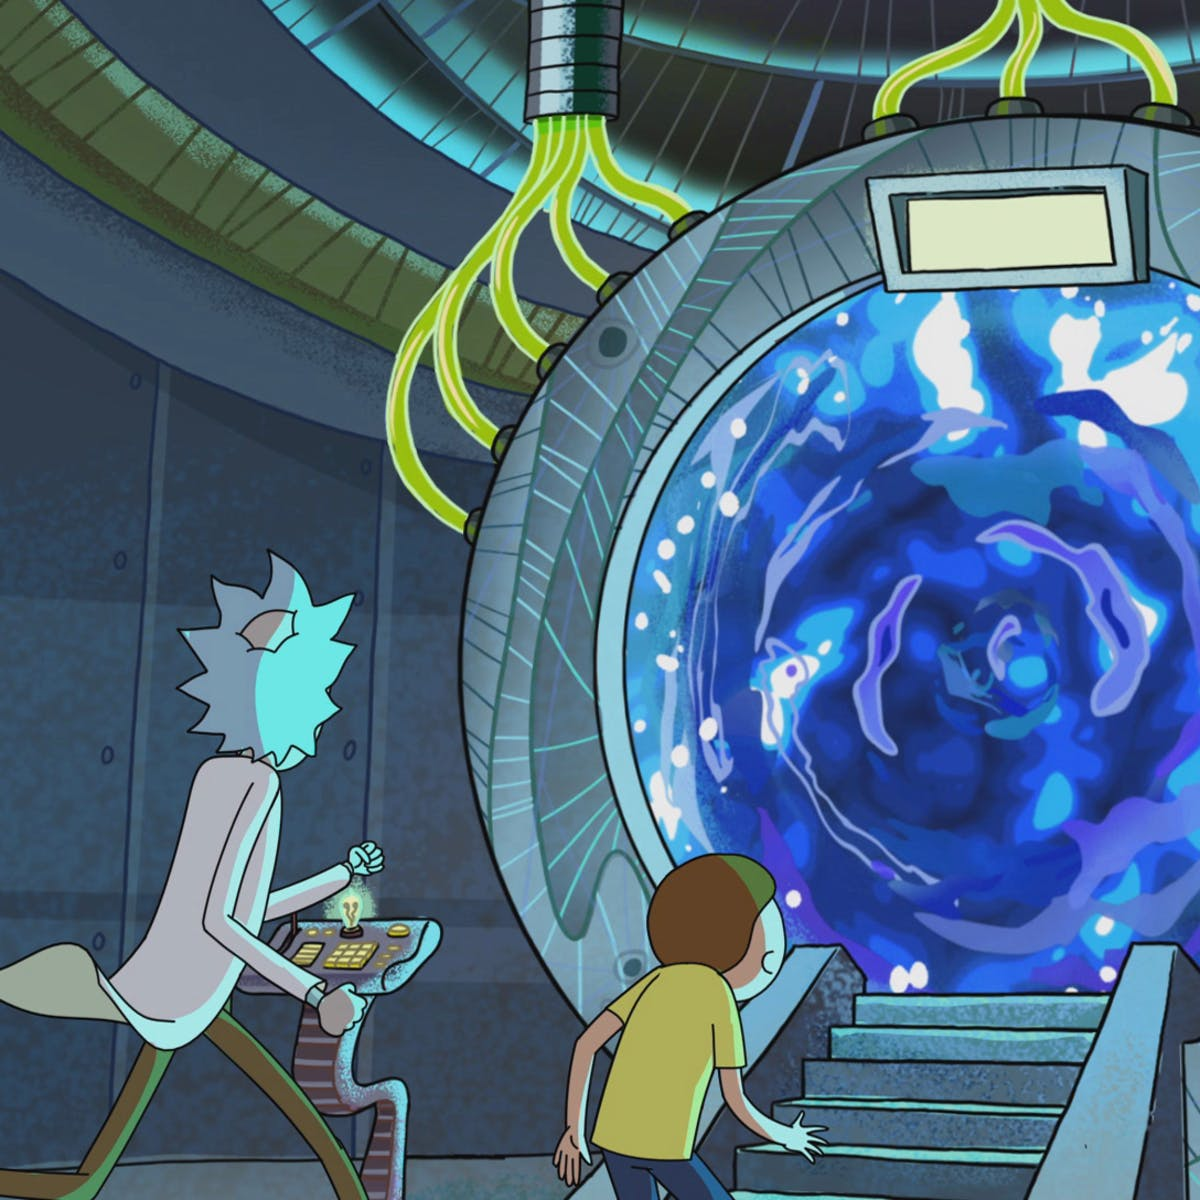 'Rick and Morty': Every Single Episode, Ranked and Reviewed